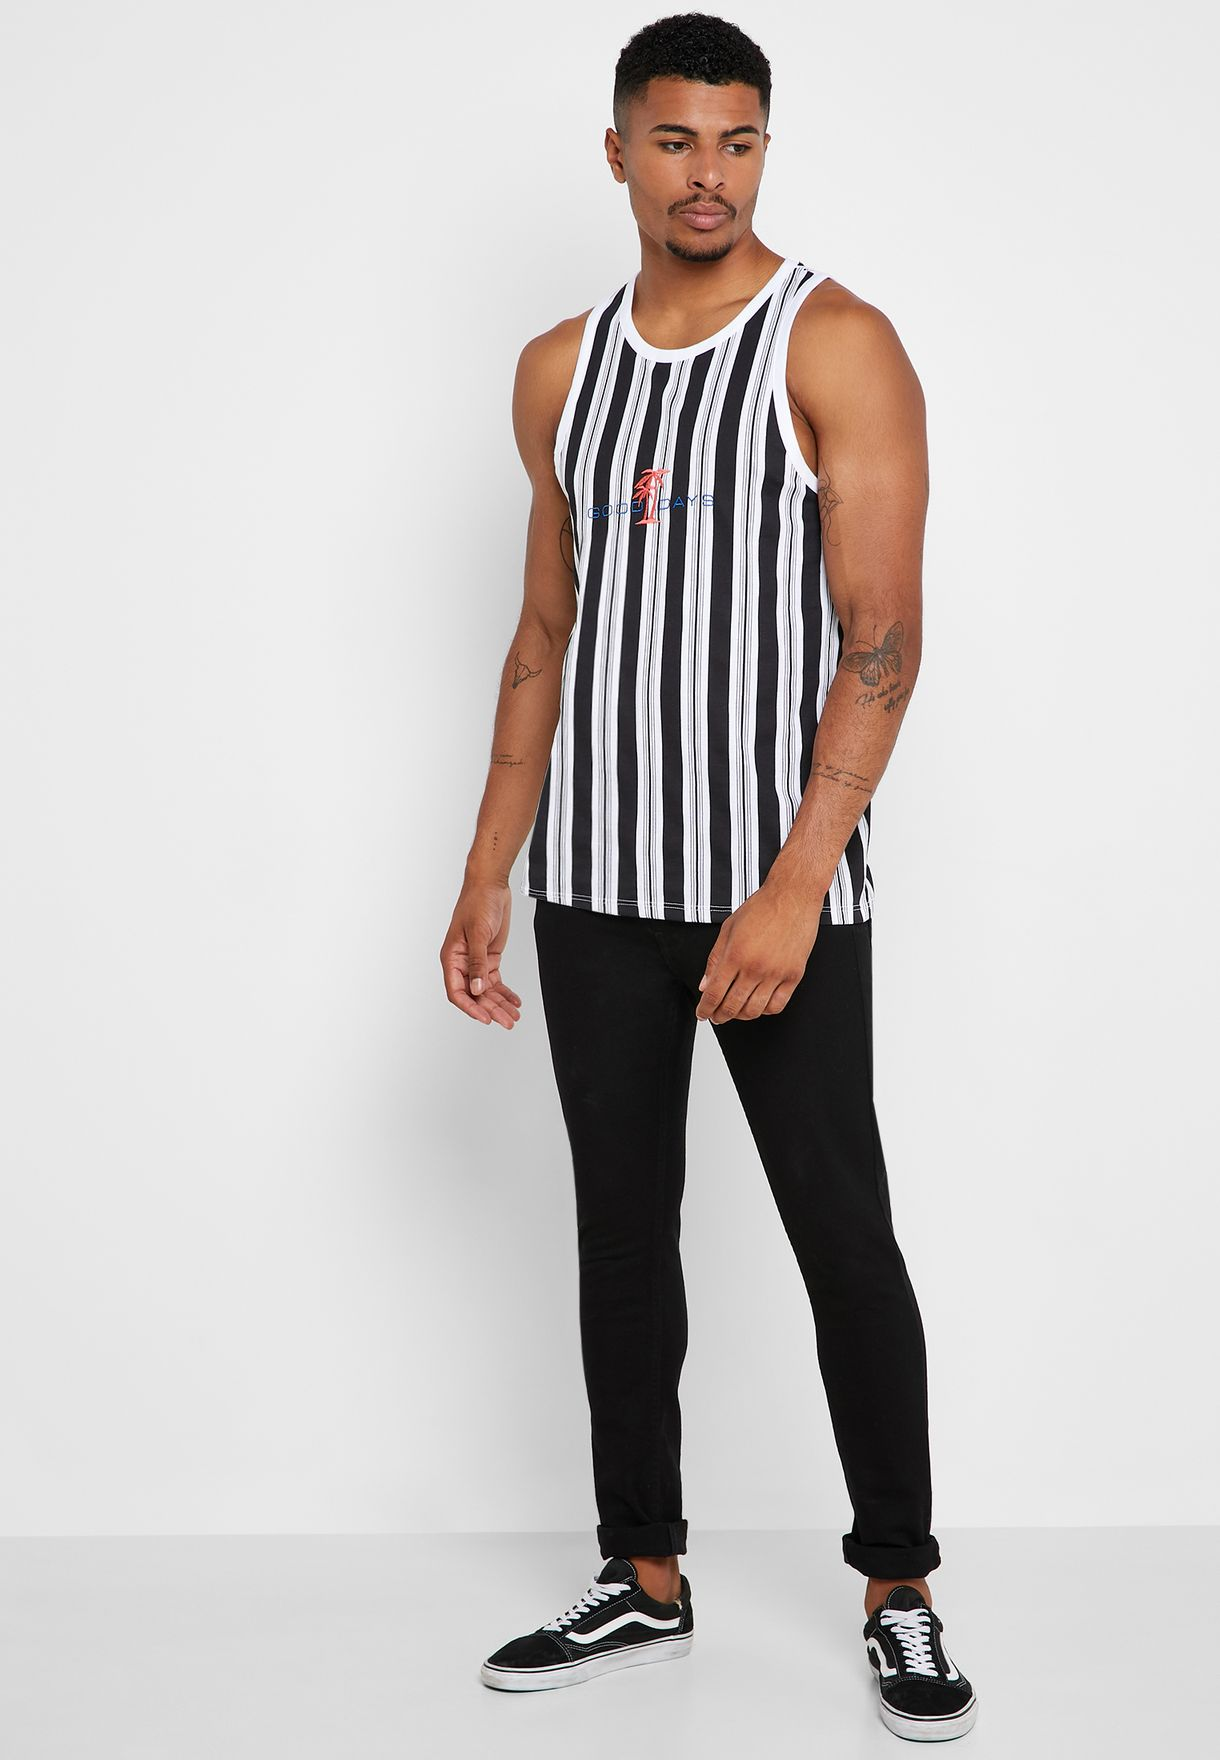 Embroidered Striped Vest